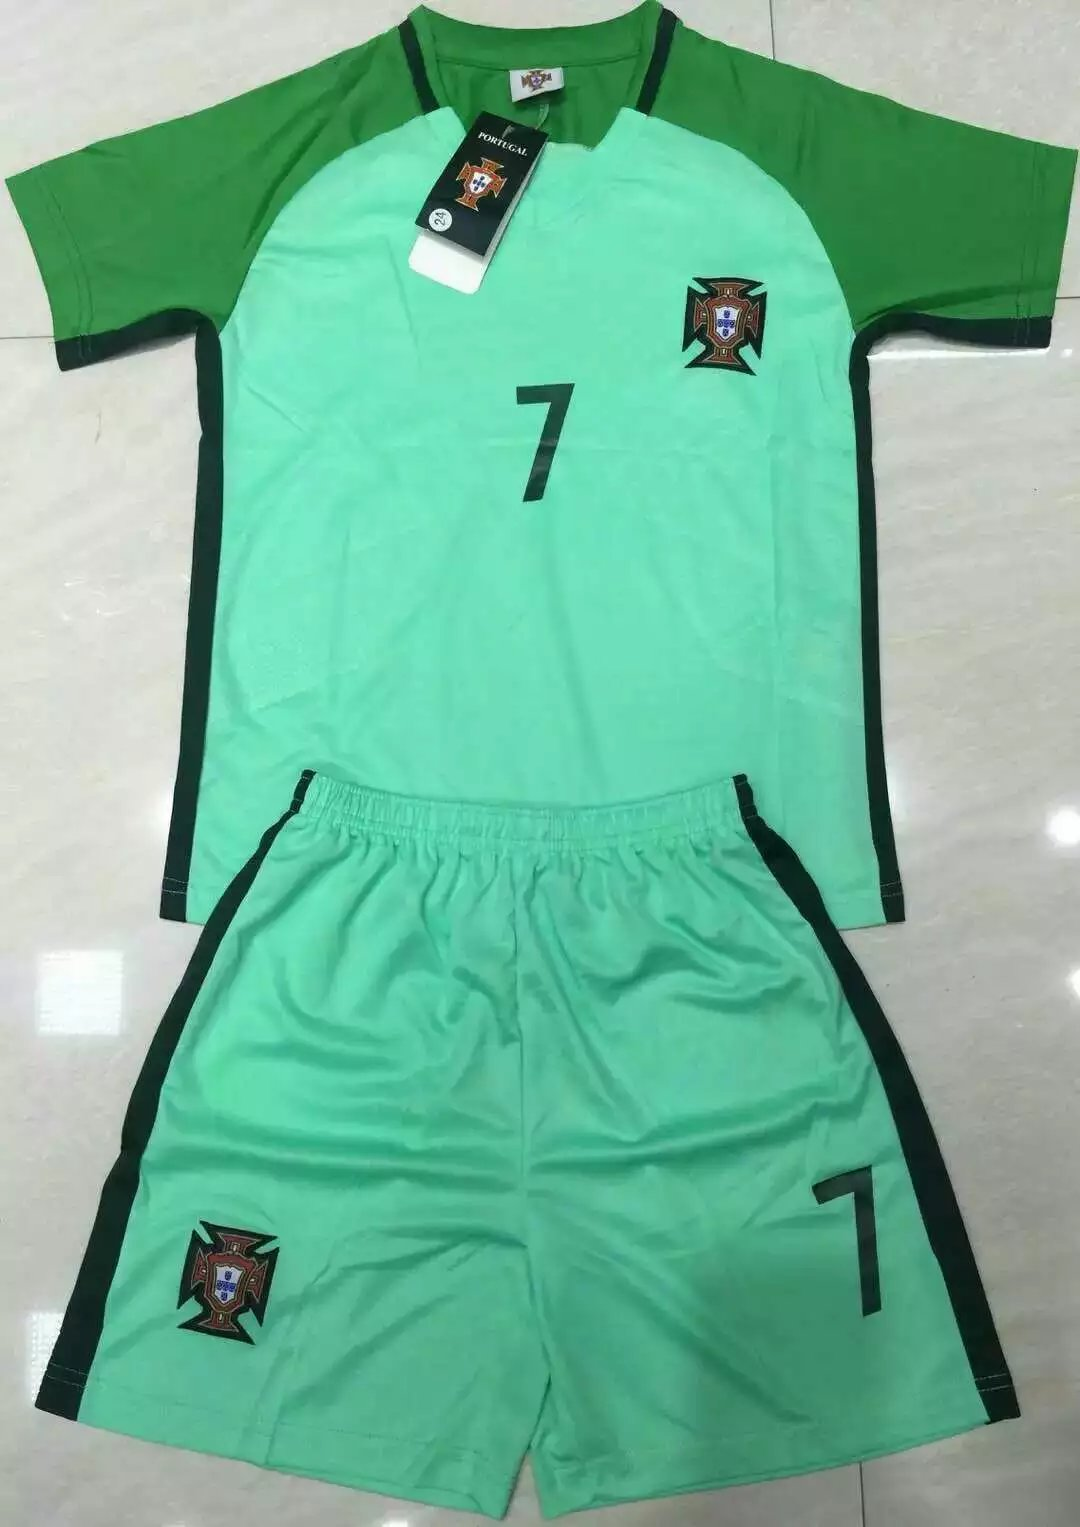 info for 49037 75c3e 2016/17 Kids Soccer Jersey Uniform Green Away With Ronaldo 7 Children  Football Jersey Kits With Name and Number Cheap Wholesale